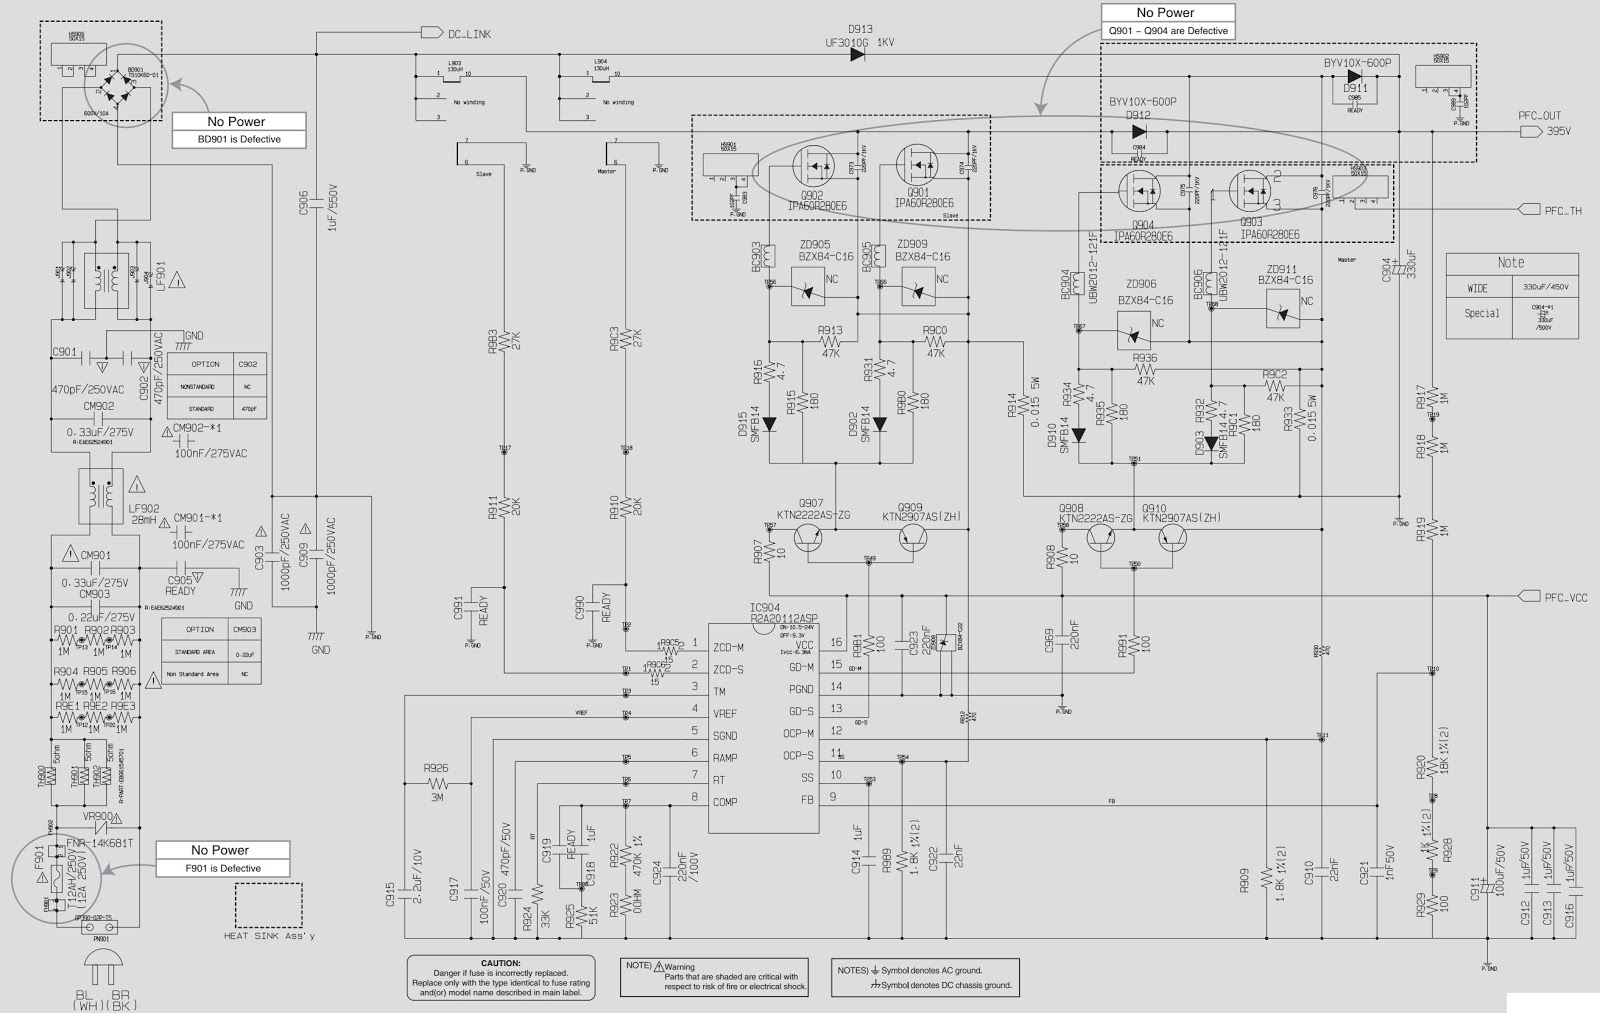 LG CM8450 Troubleshooting and Circuit diagram Mini Hi-Fi